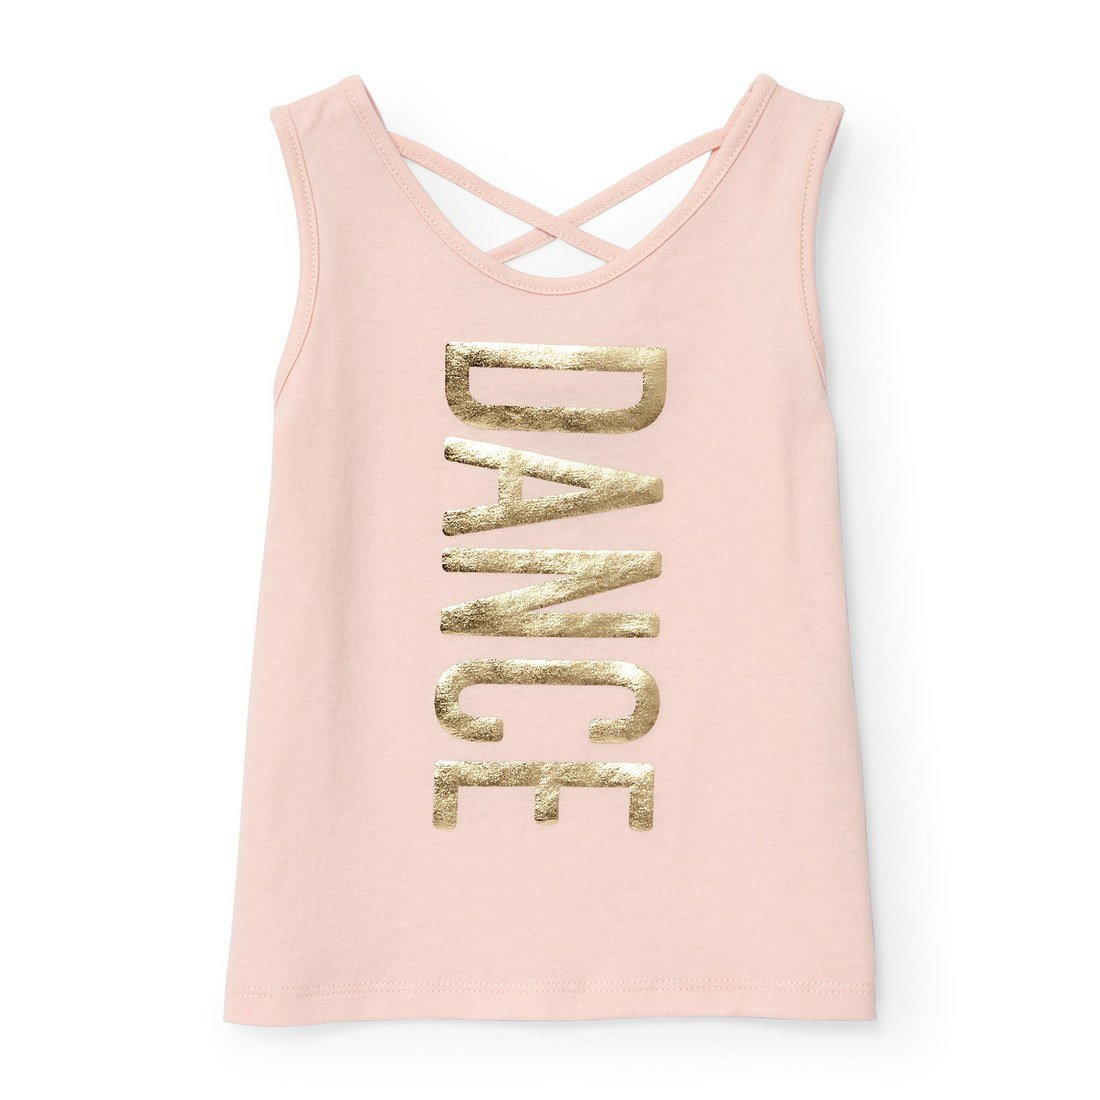 The Childrens Place Baby Girls Tank Top